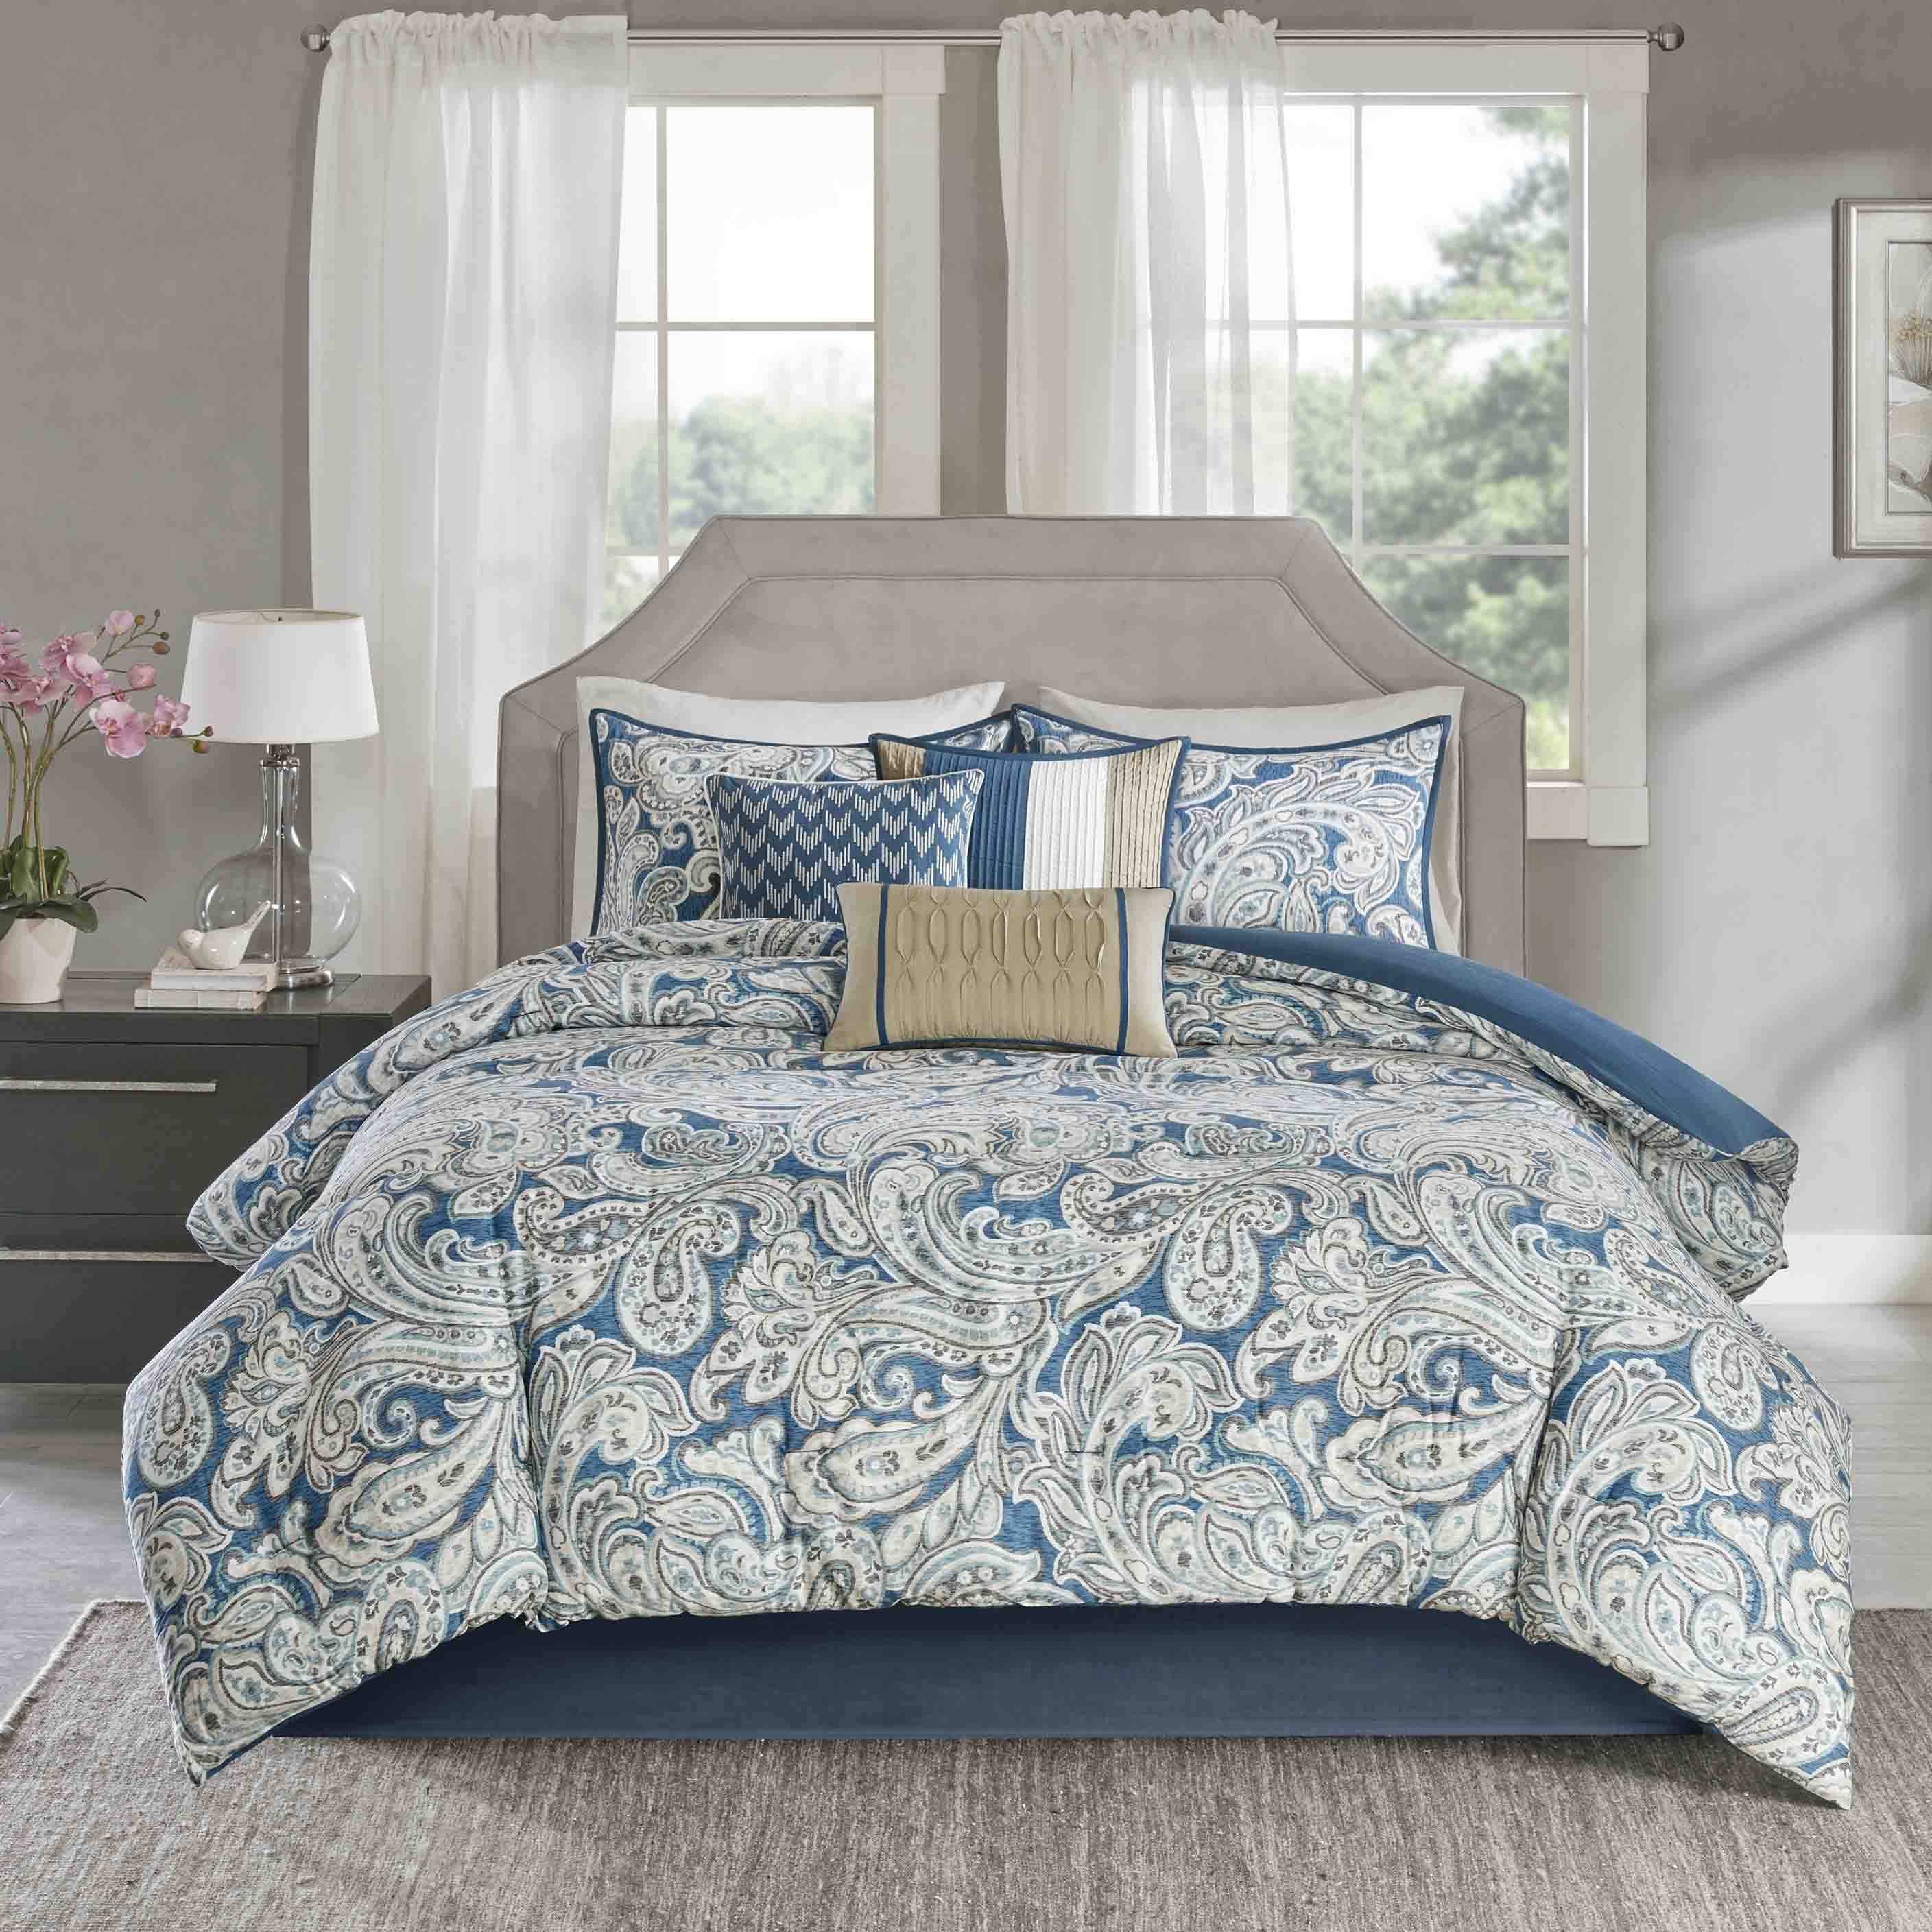 extraordinary oversized comforter in comforters blue king and sets decoration sale stunning for bedroom bath quilt gray chatfield cal stripe bed beyond pattern bedding ideas